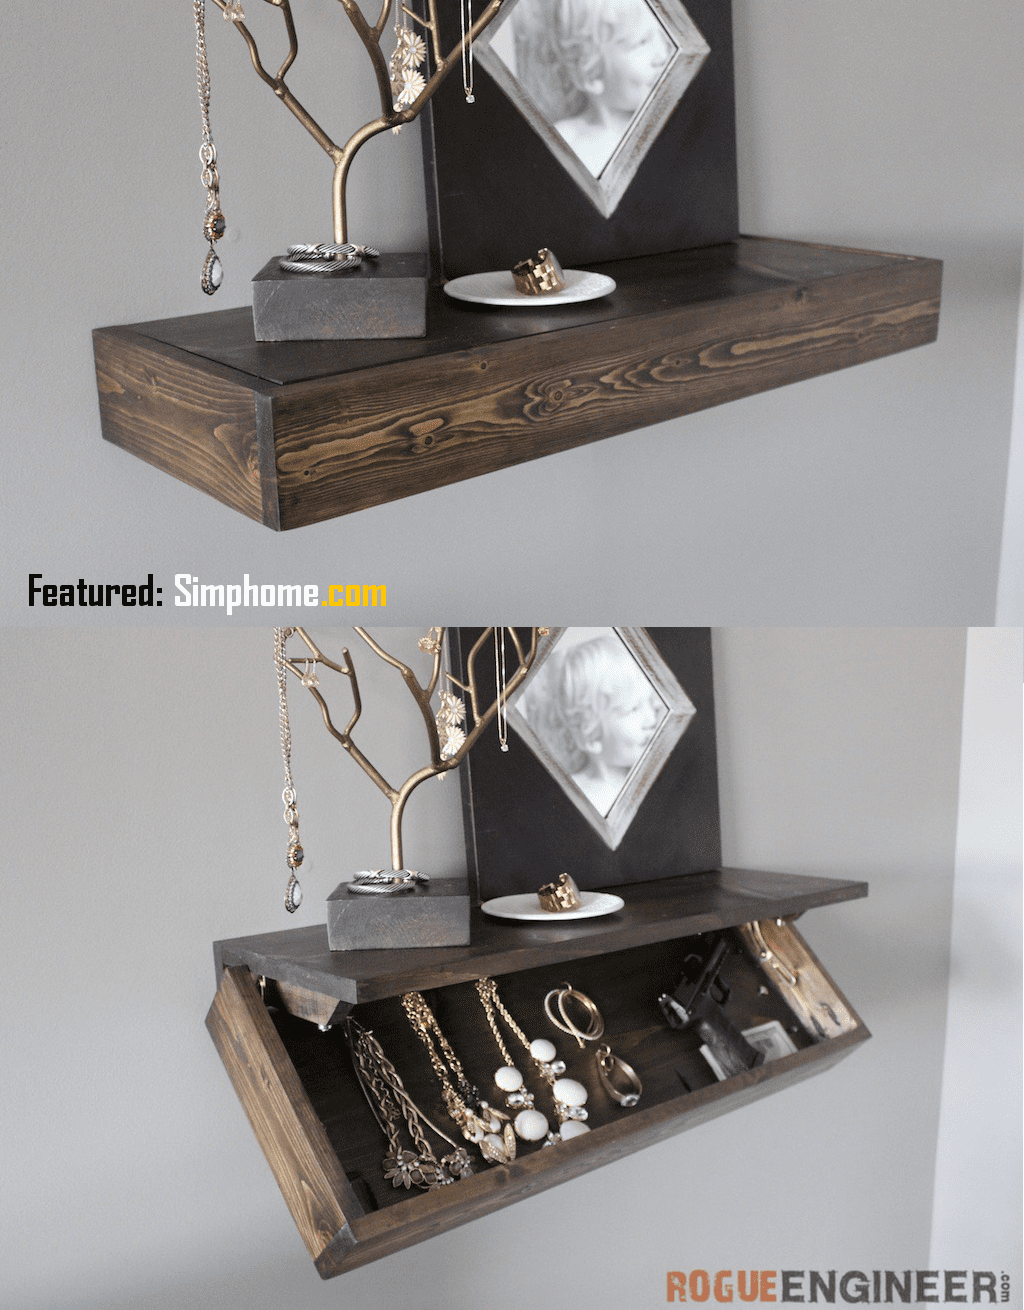 5.Simphome.com Floating Shelf with Drawer